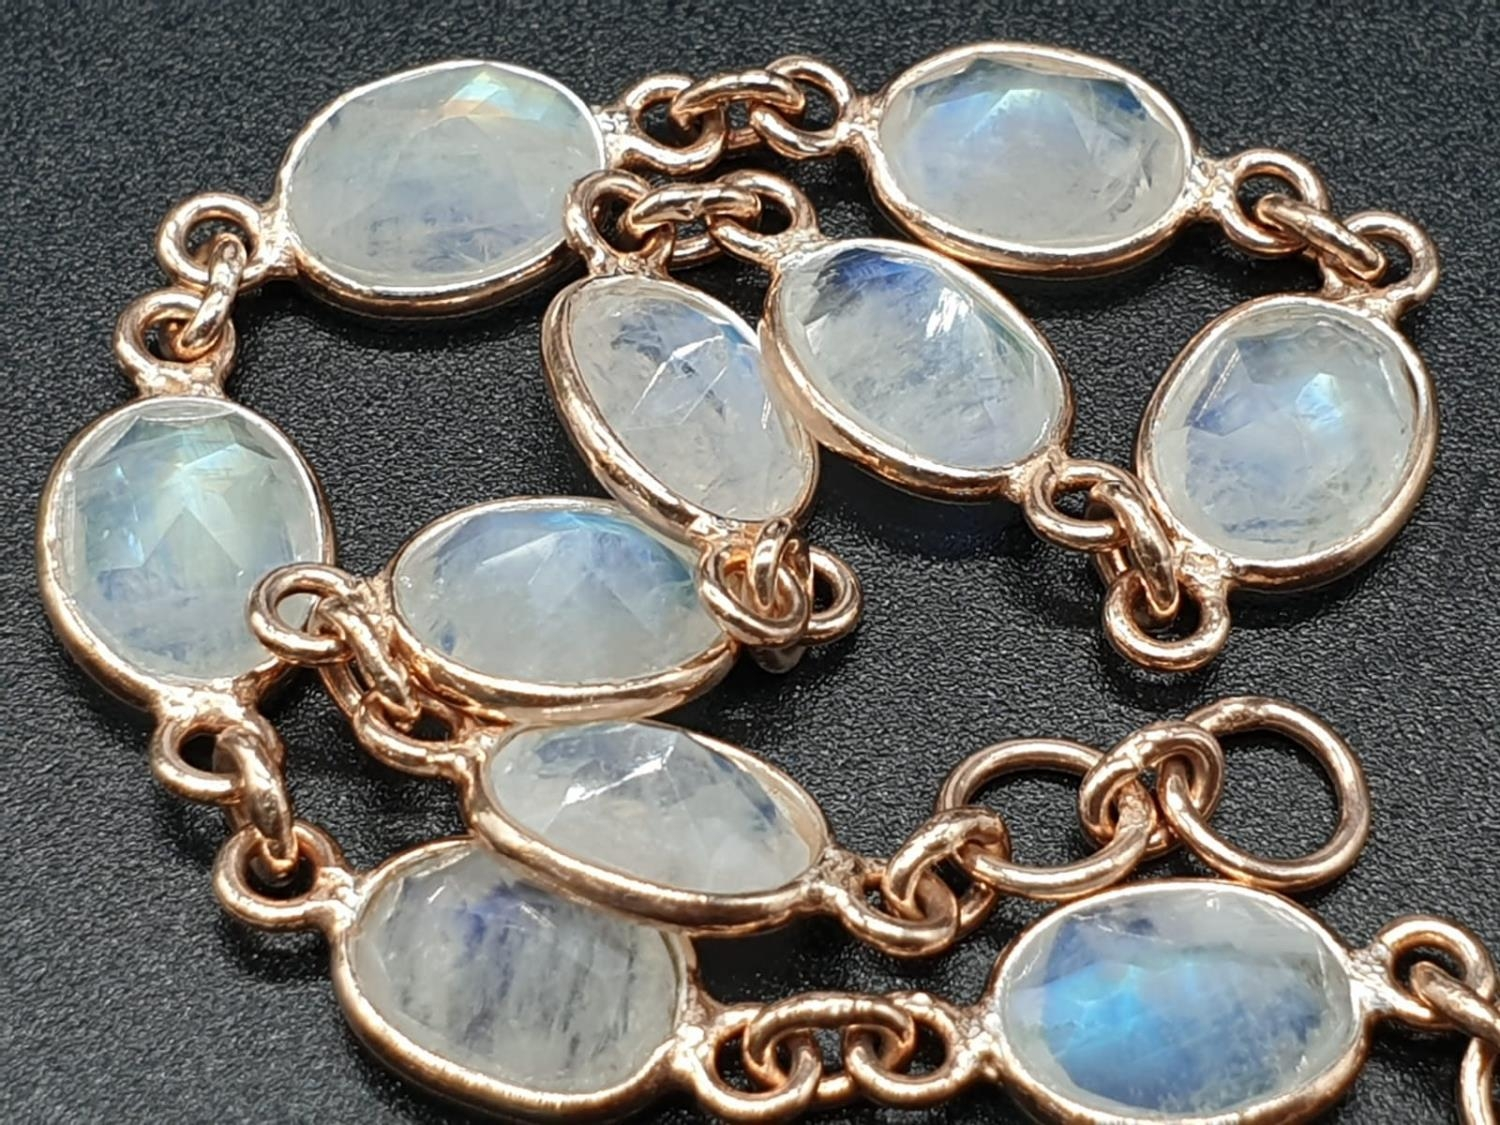 Rainbow Moonstone Bracelet with matching Raw Dangler Earrings in Sterling silver rose gold finish. - Image 4 of 5